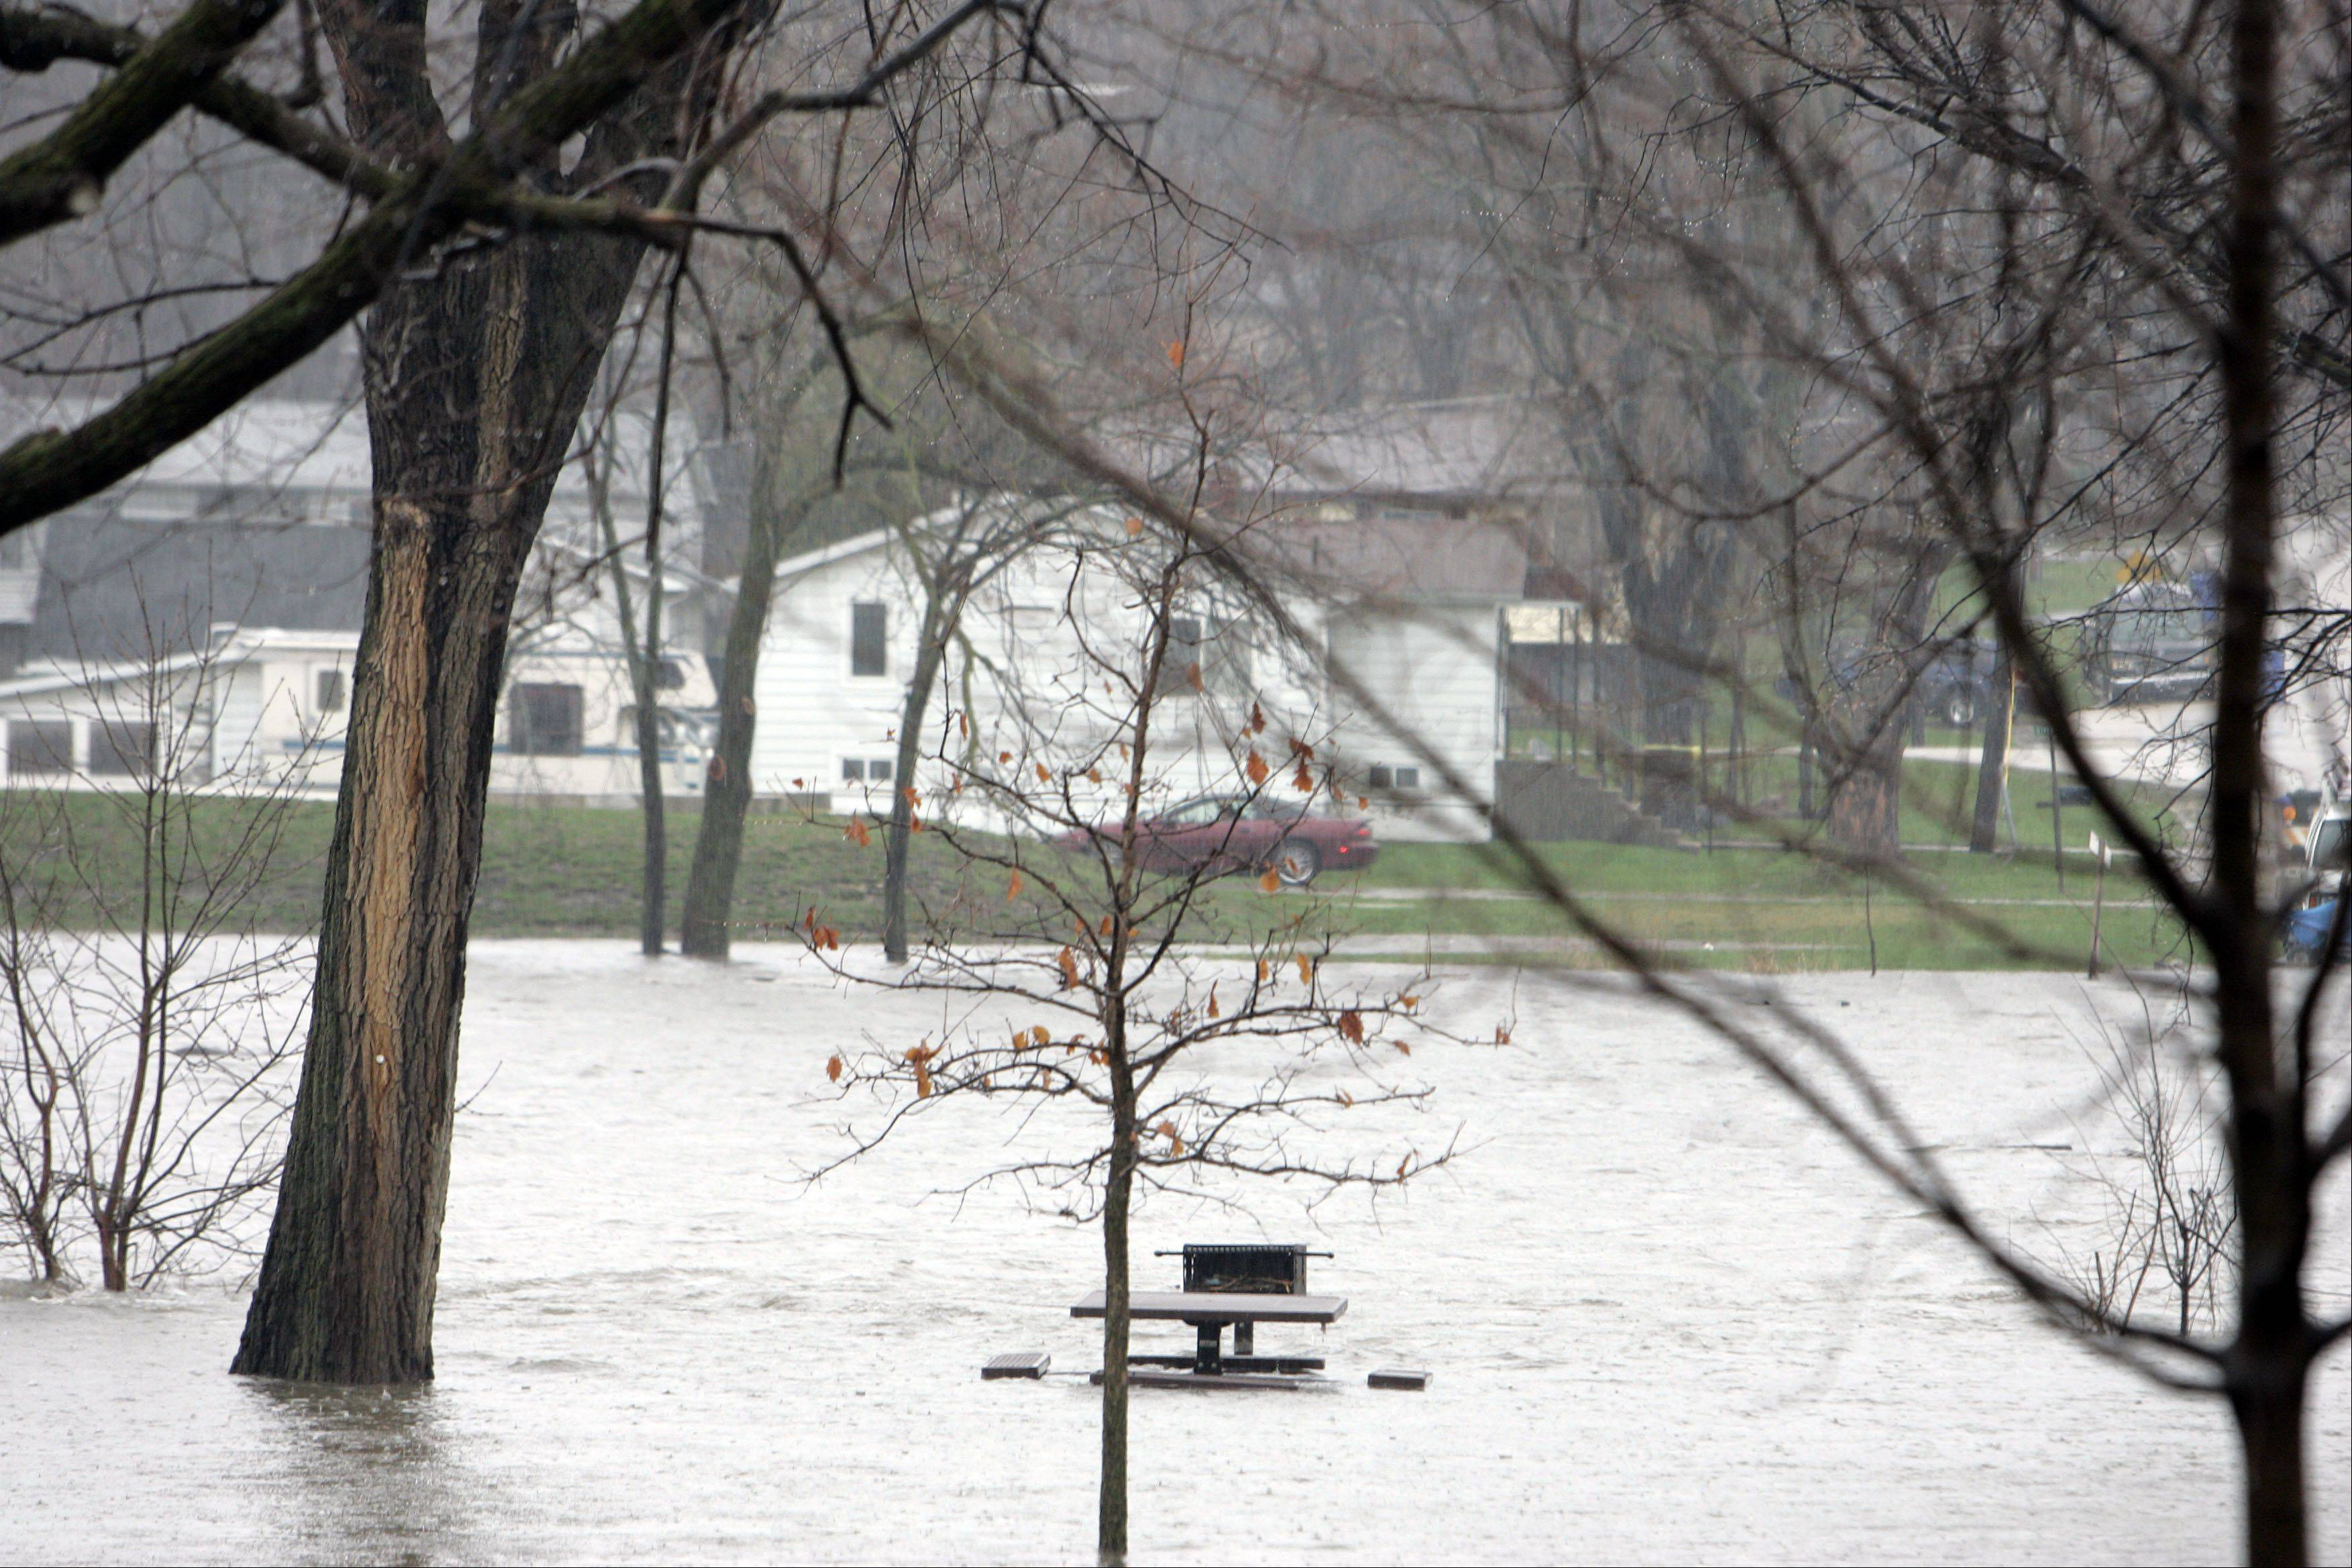 Water invades Seba Park after April flooding on the Fox River in South Elgin.